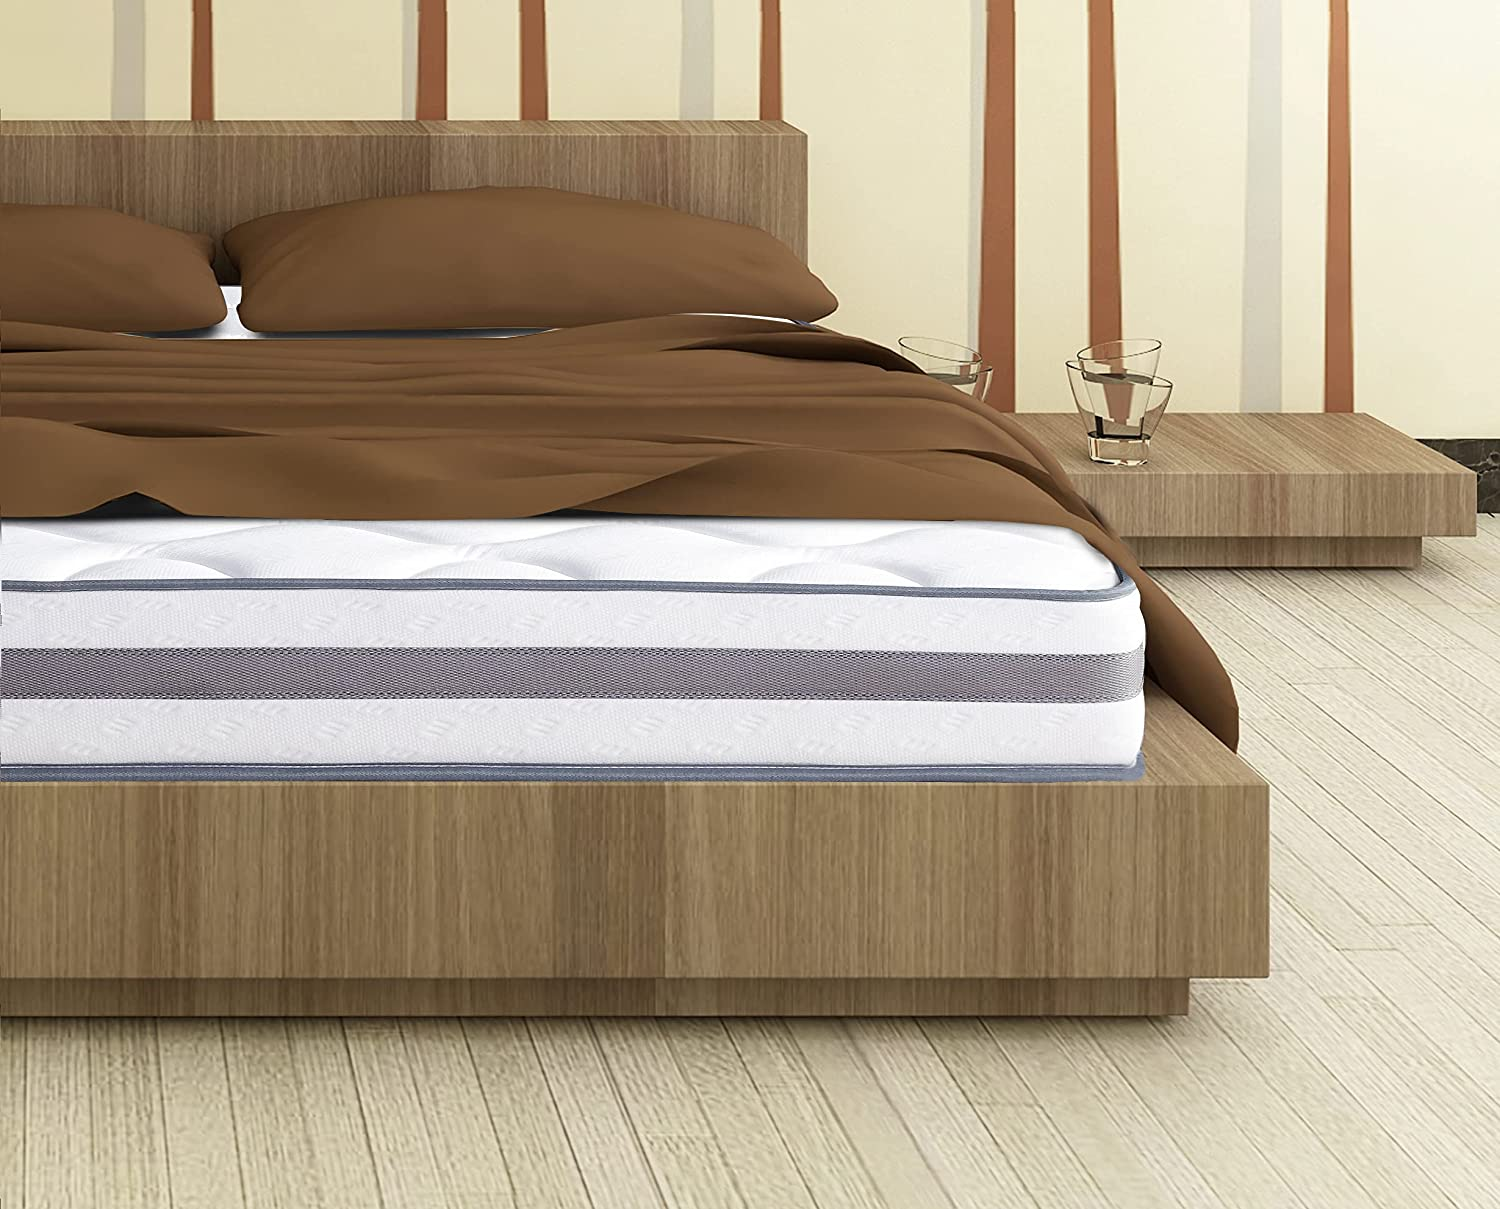 Full Size Mattress Rucas 10 Foam Memory with Direct sale High order of manufacturer Gel Inch